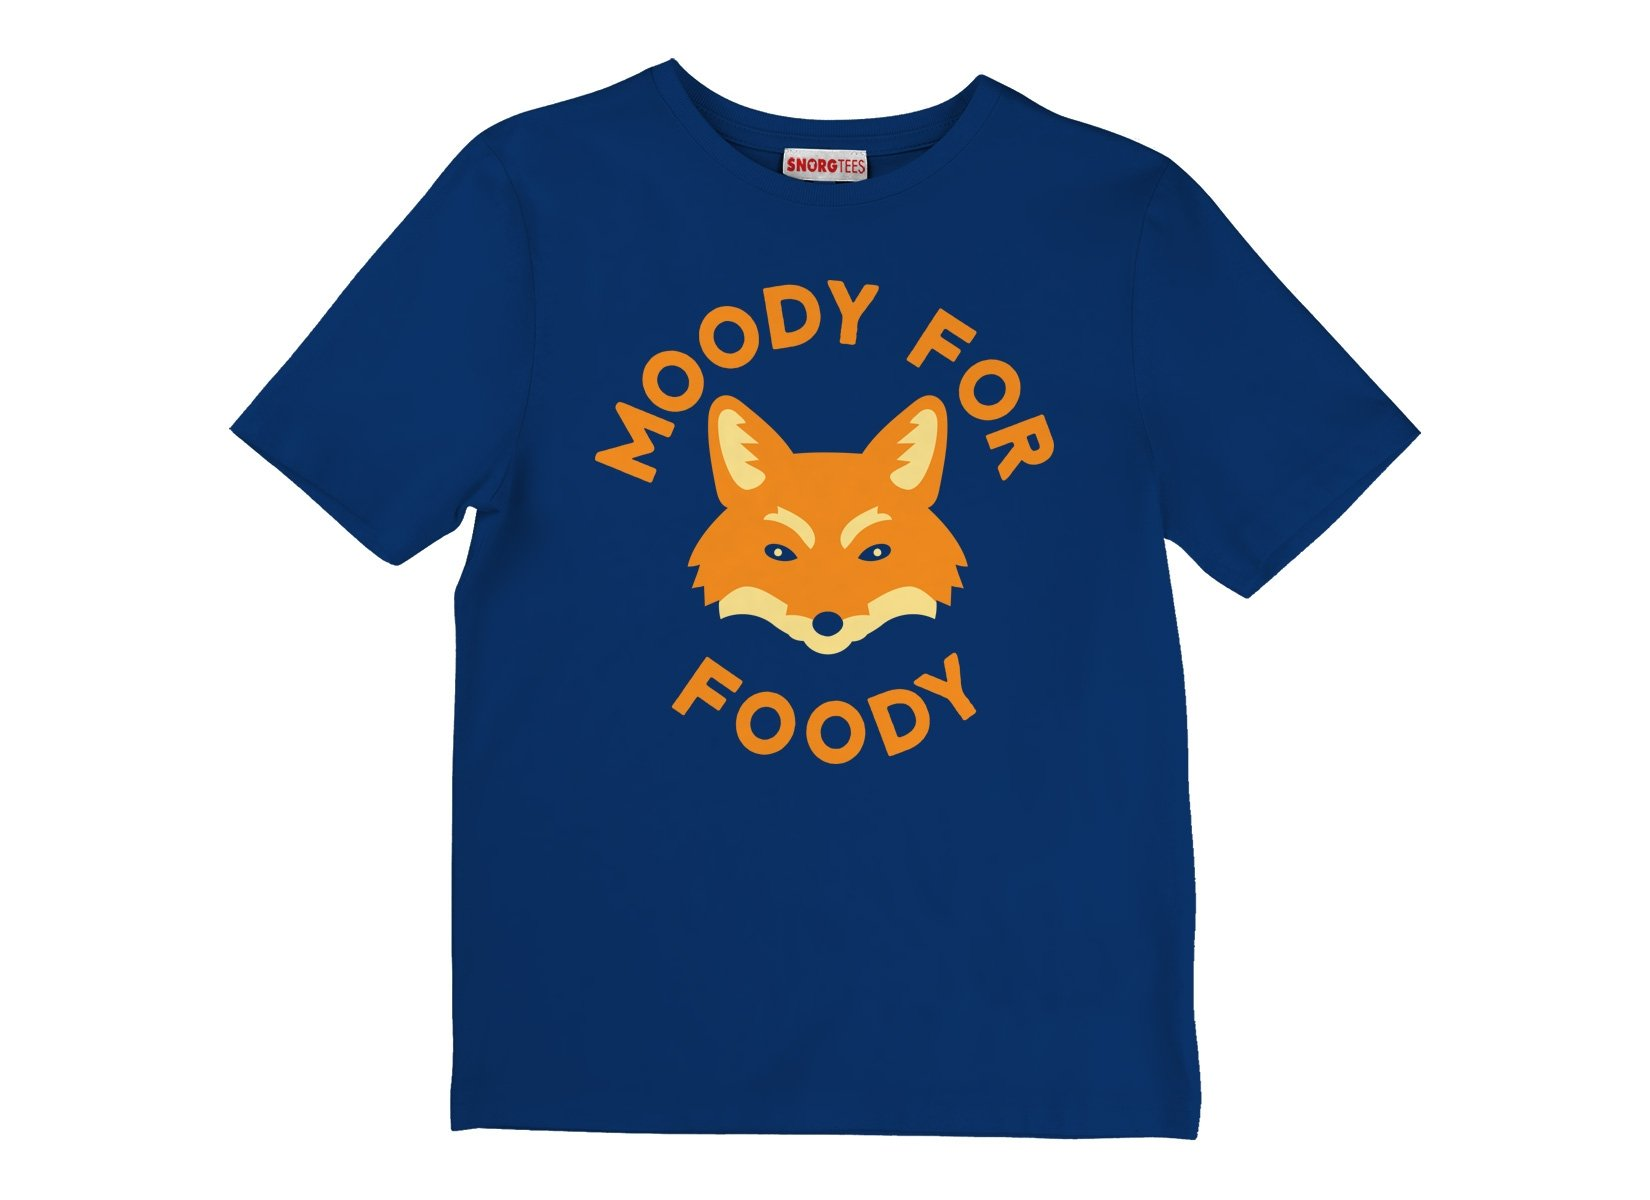 Moody For Foody on Kids T-Shirt